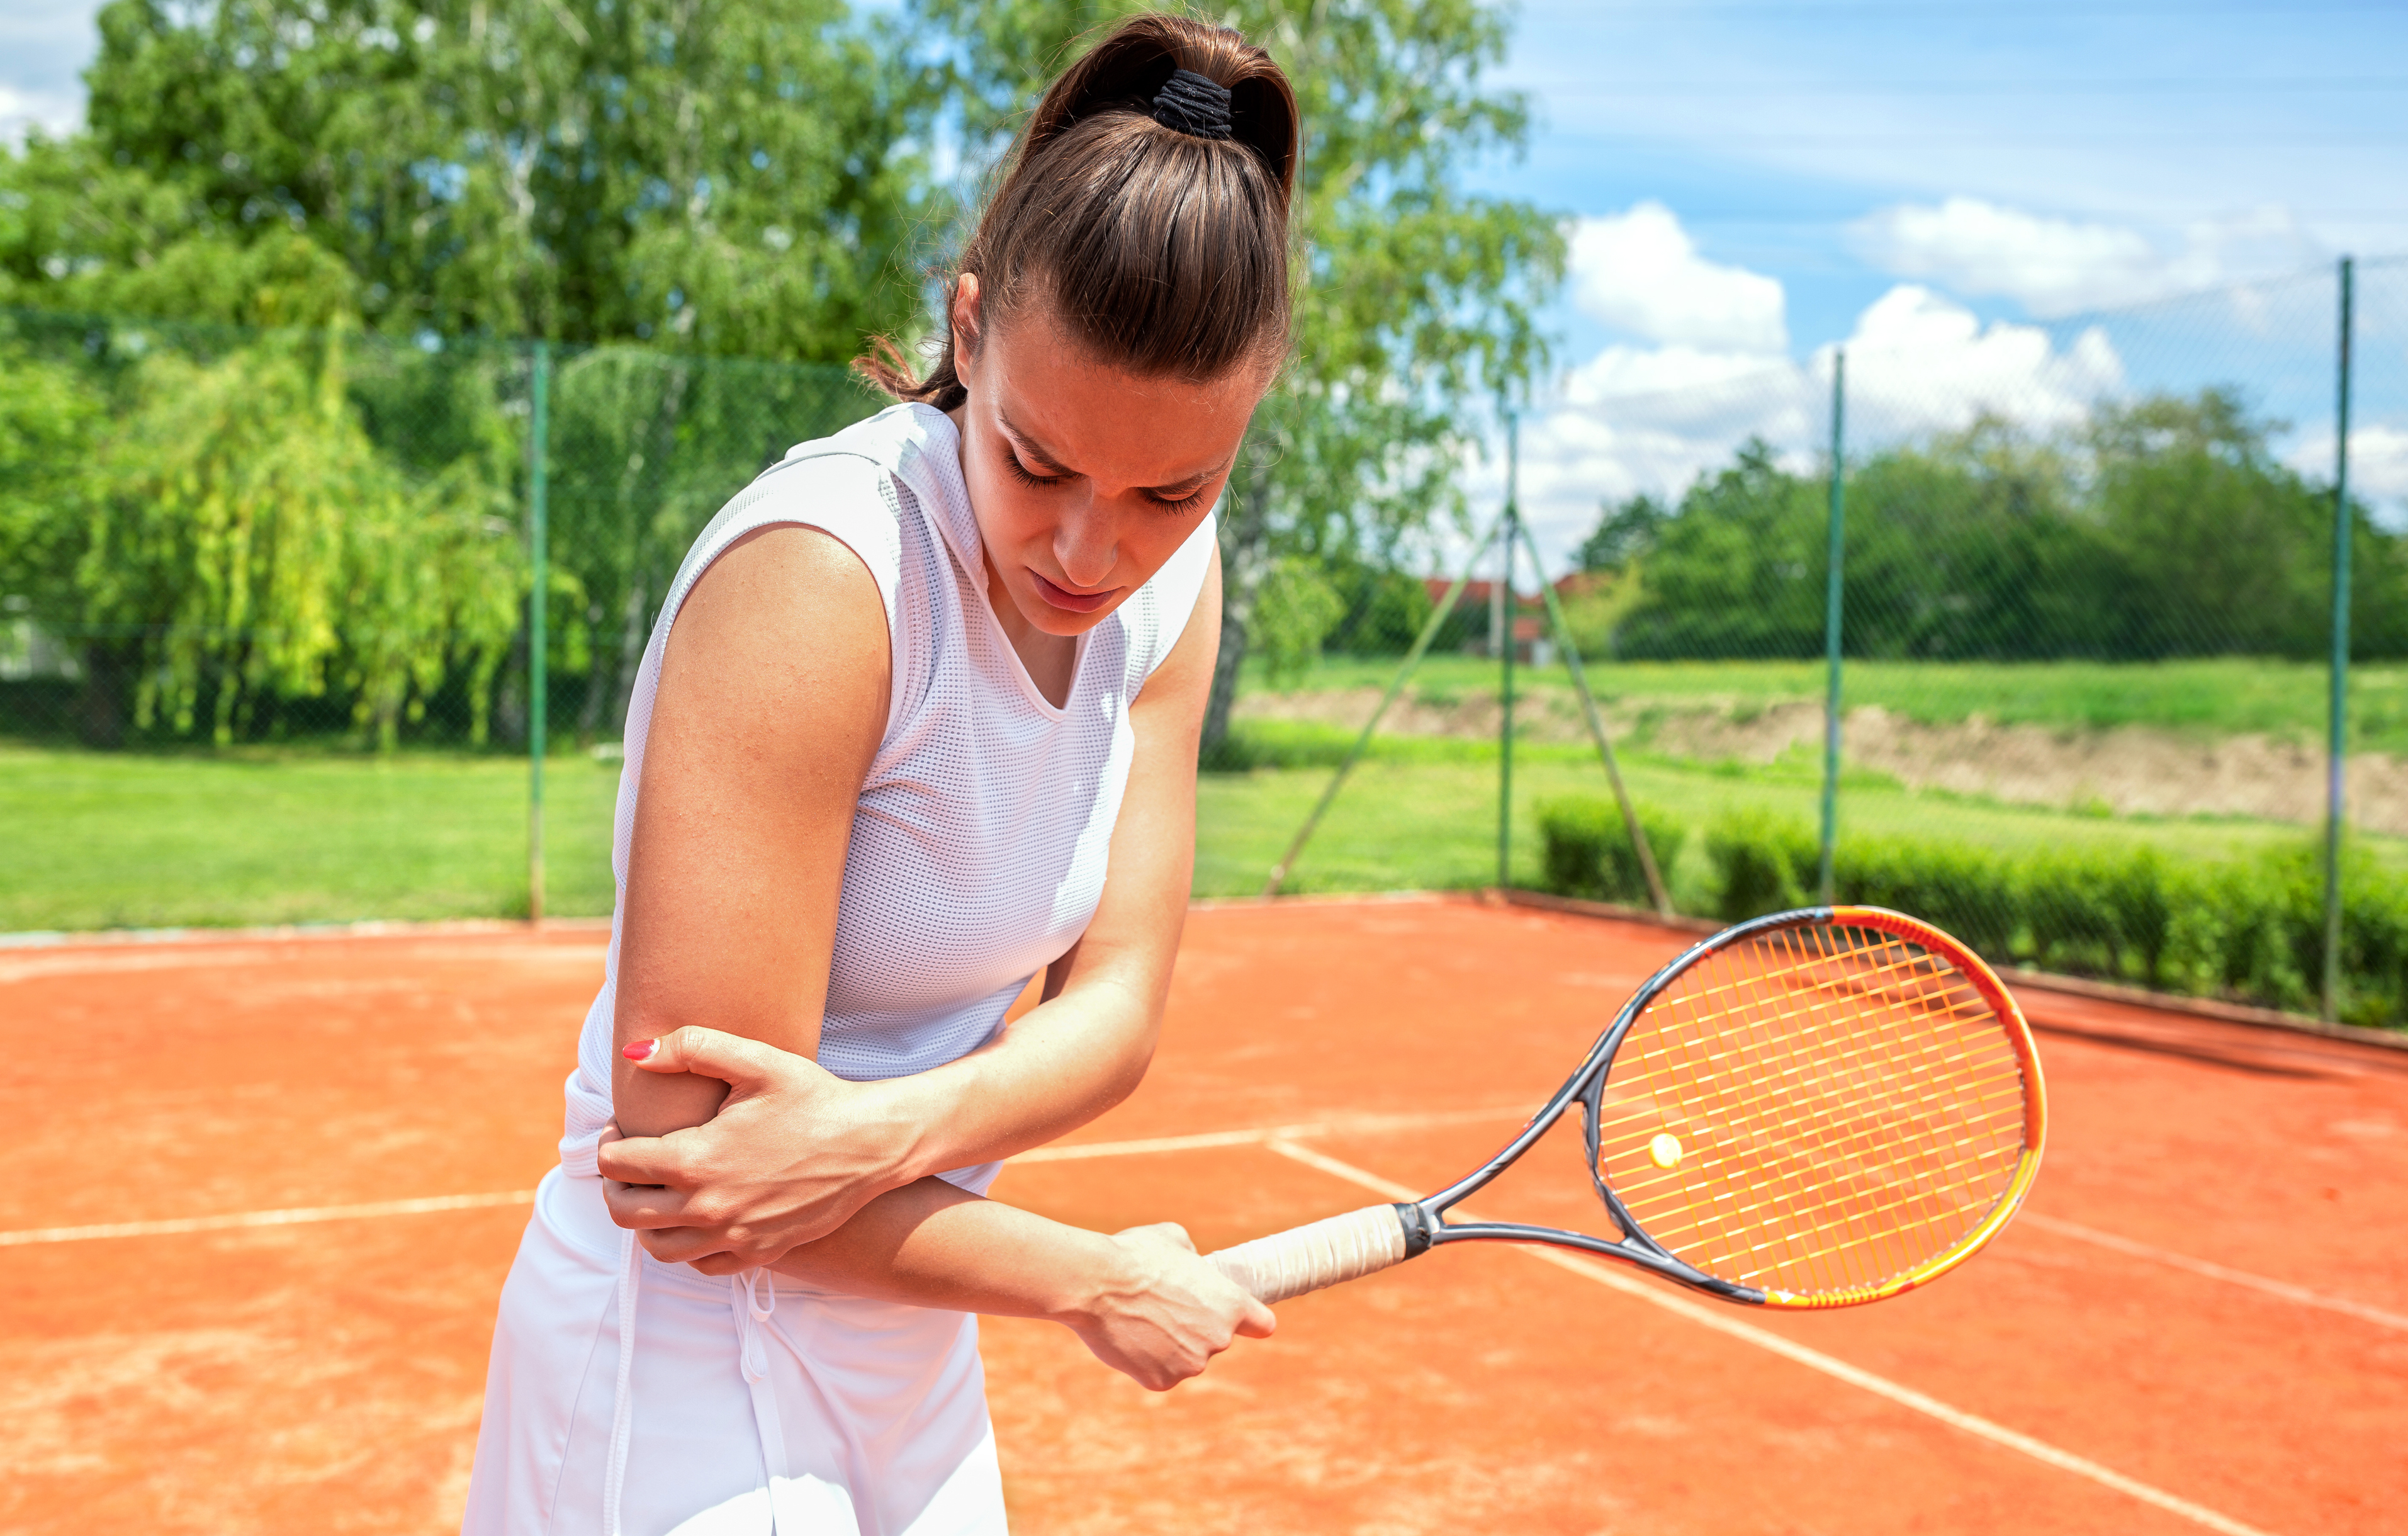 Tennis elbow treatment, causes & cures - everything you should know